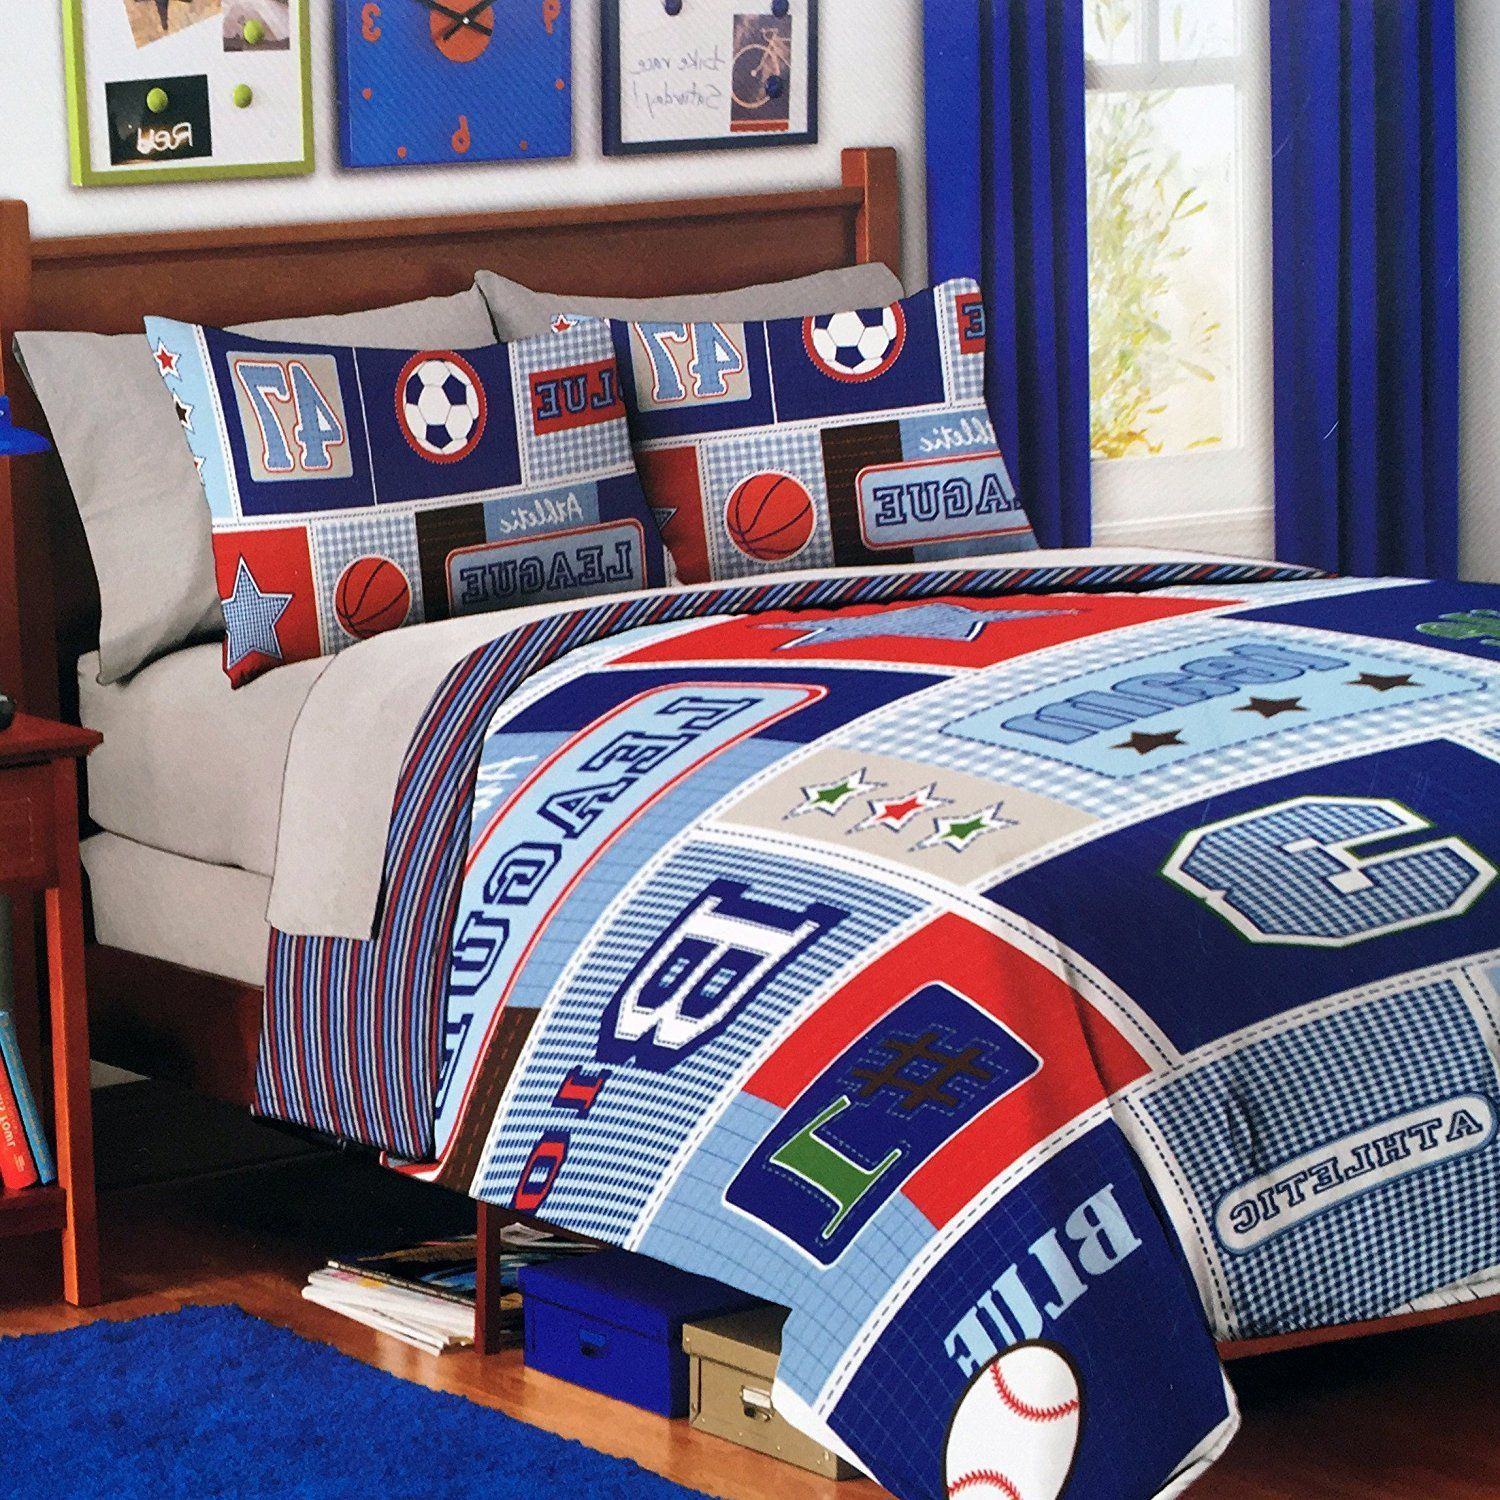 2 Piece Kids Sports Themed Comforter Twin Set All Sports Bedding For Boys Featuring Soccer Baseball Basketball Boys Bedding Sports Bedding Bed Linens Luxury